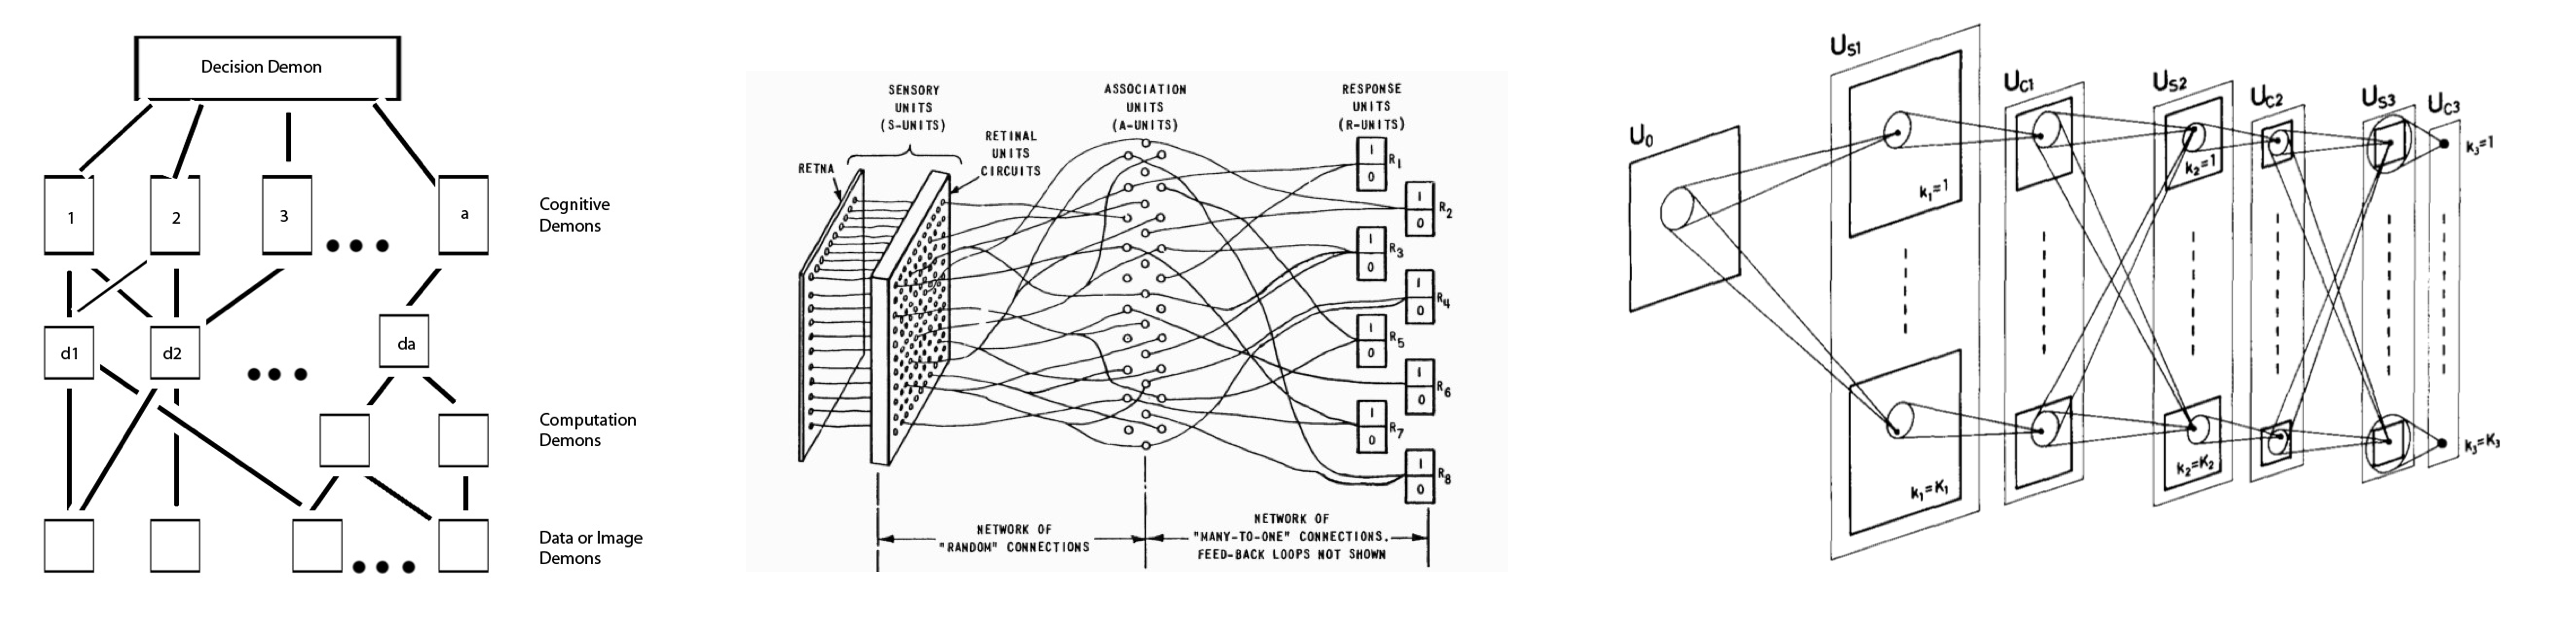 Diagrams from three classic neural network papers